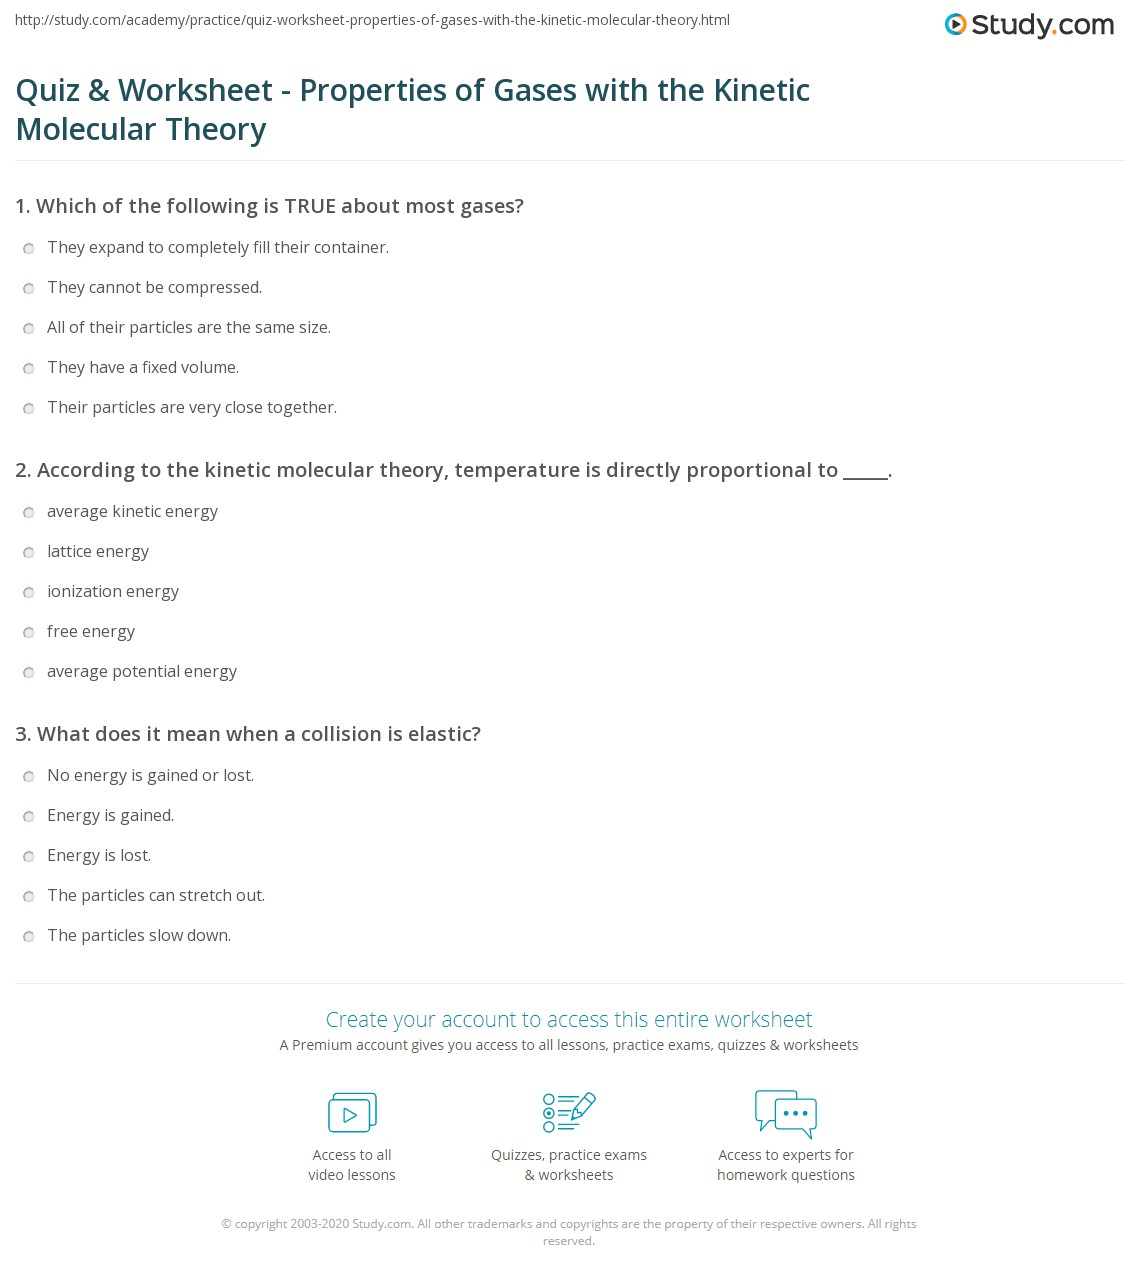 Worksheets Kinetic Molecular Theory Worksheet quiz worksheet properties of gases with the kinetic molecular print theory worksheet